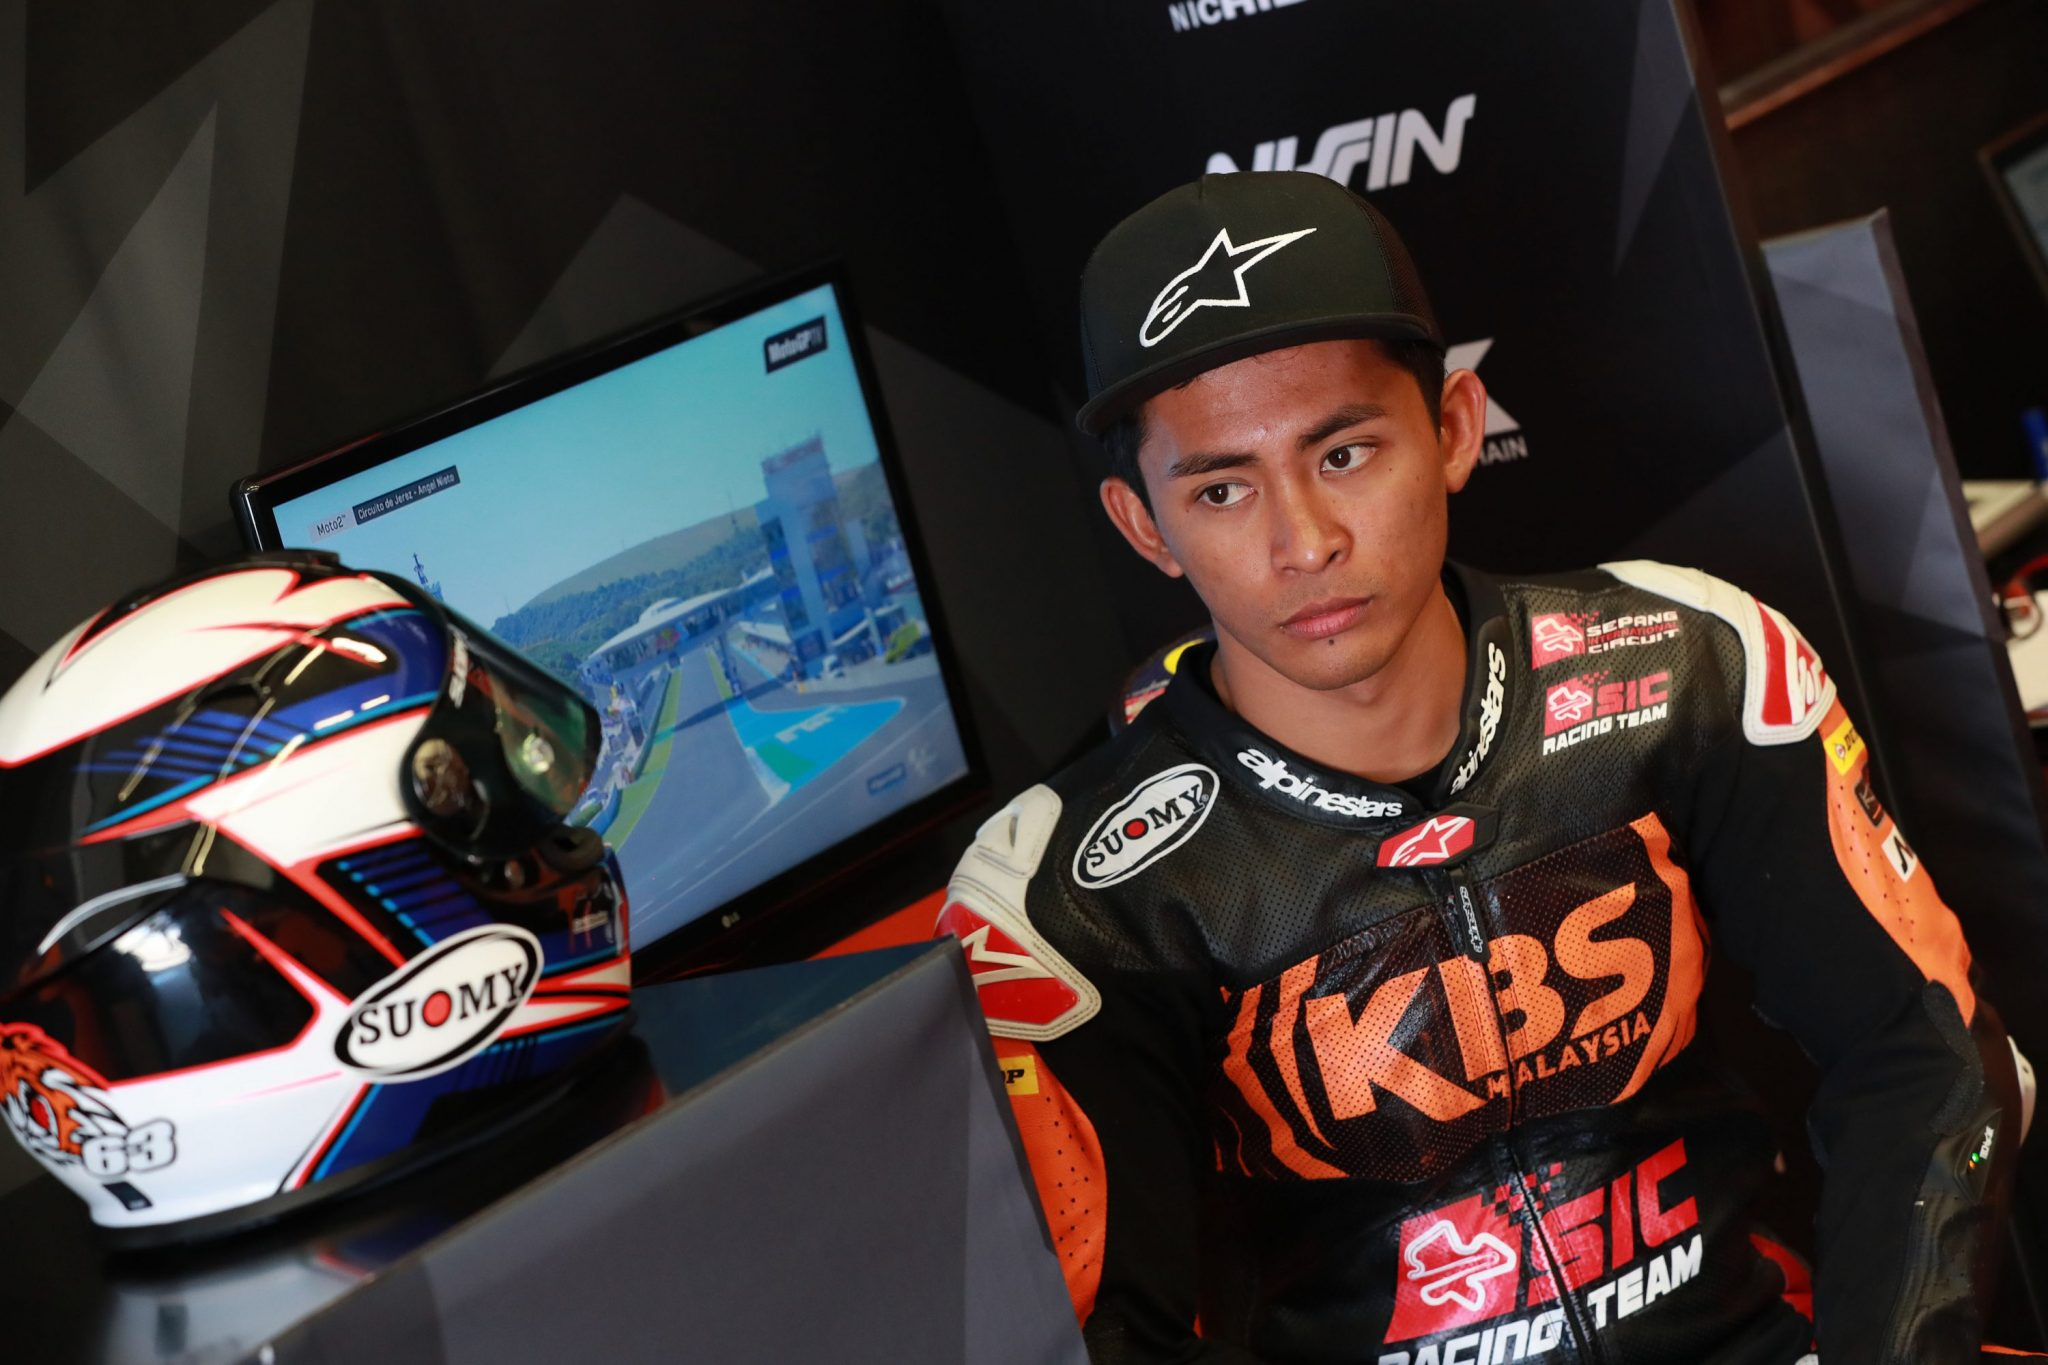 Moto2 - Zulfahmi Khairuddin leaves SIC Racing Team